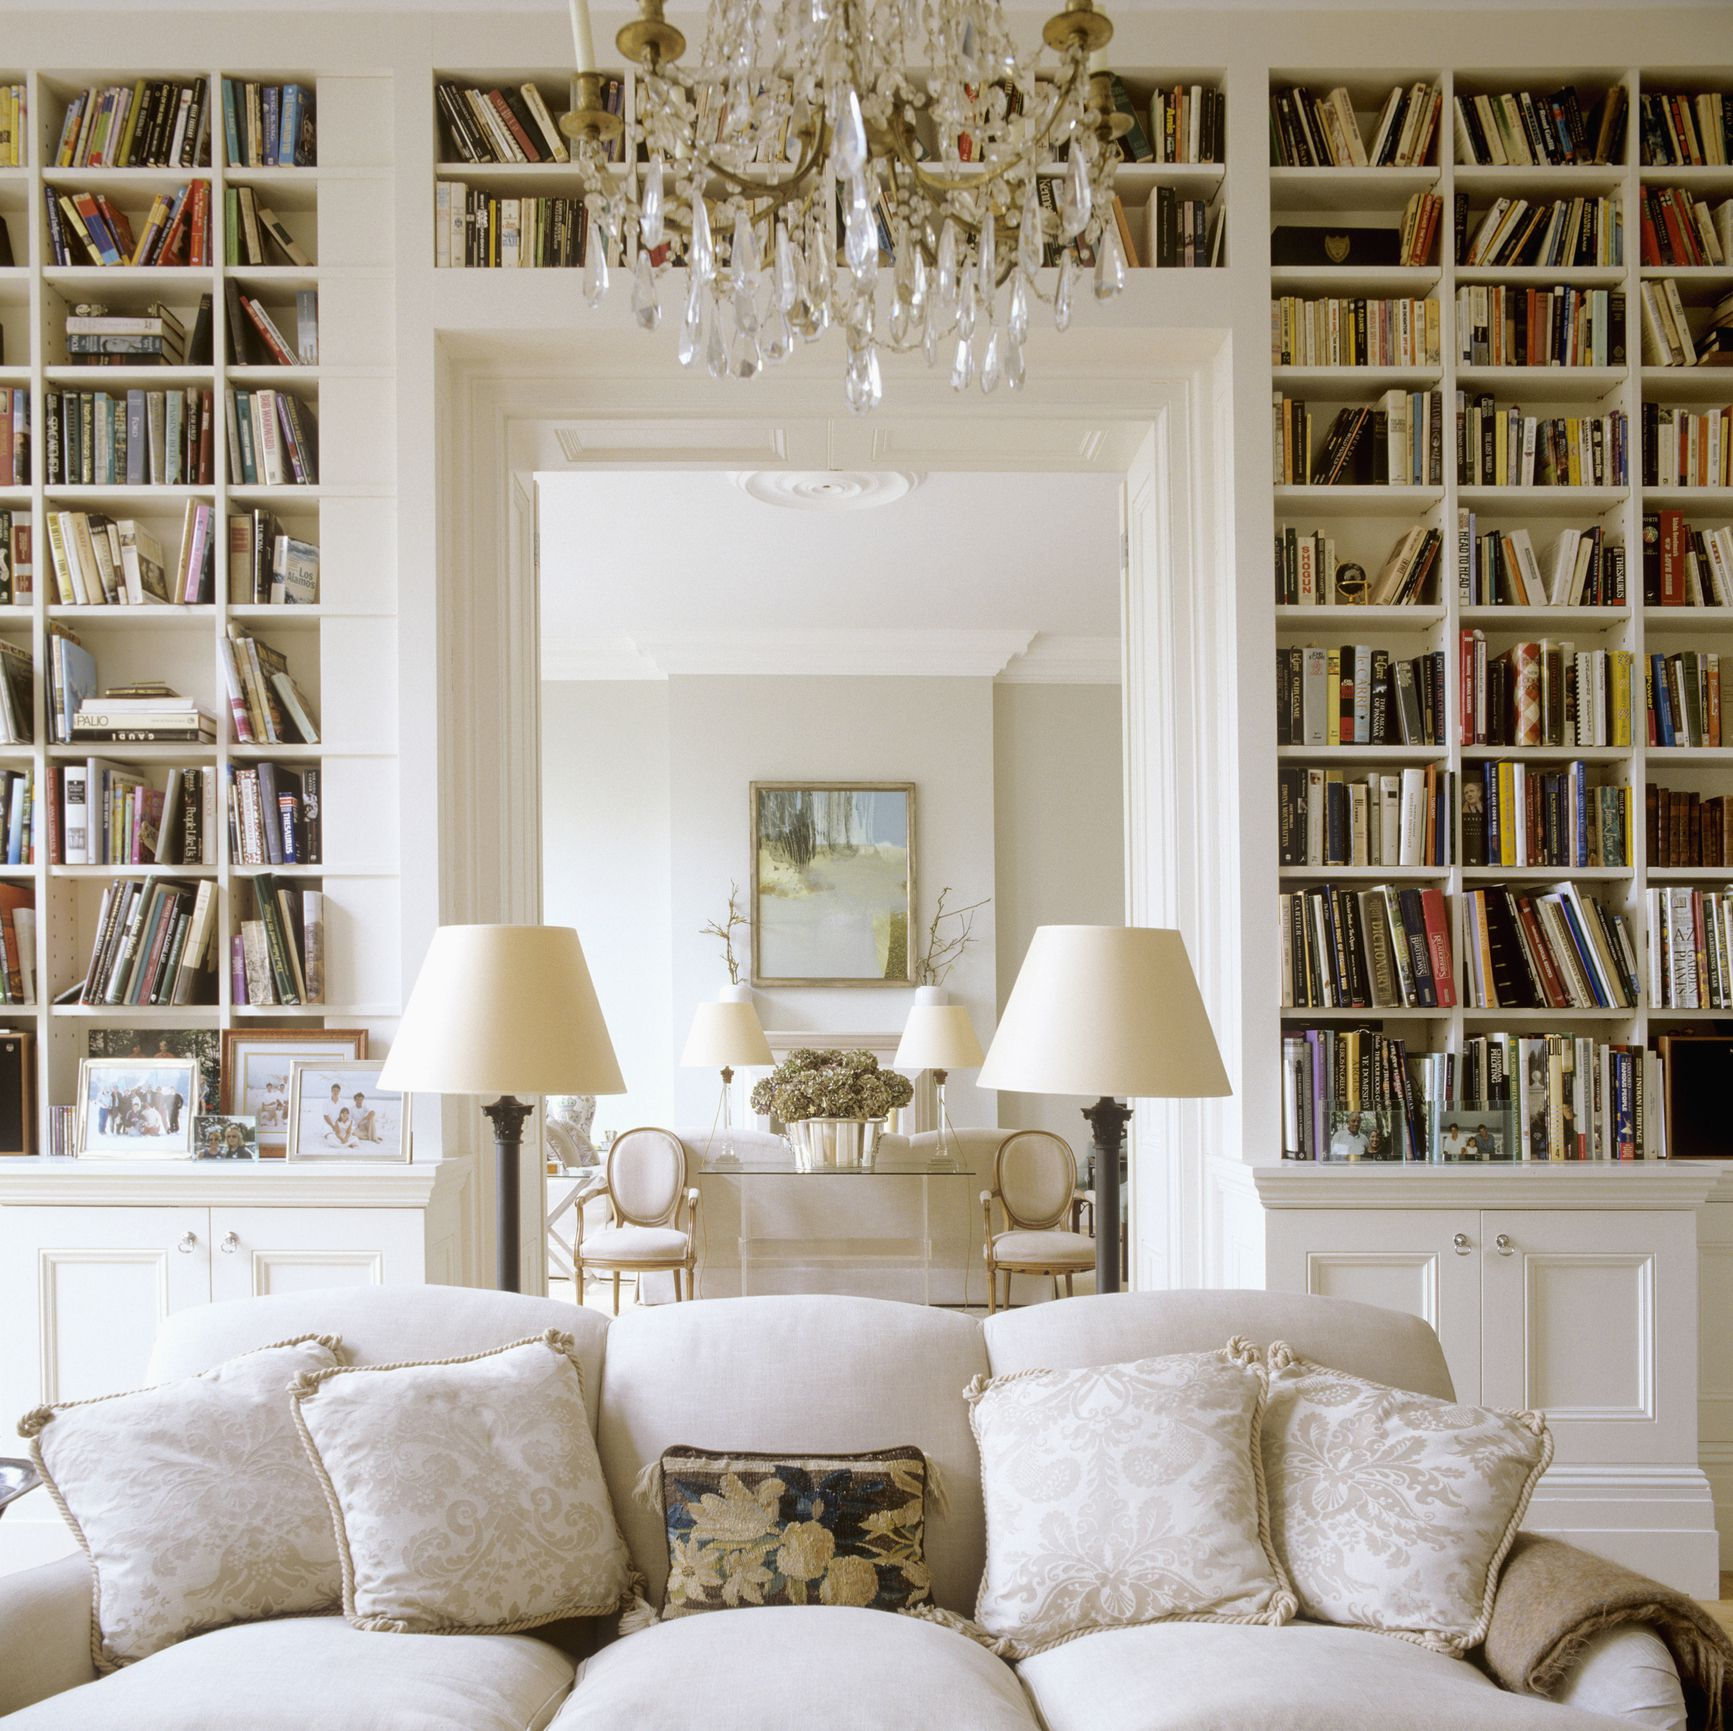 Decorating A Bookshelf Is Great Way To Flex Your Styling Muscles